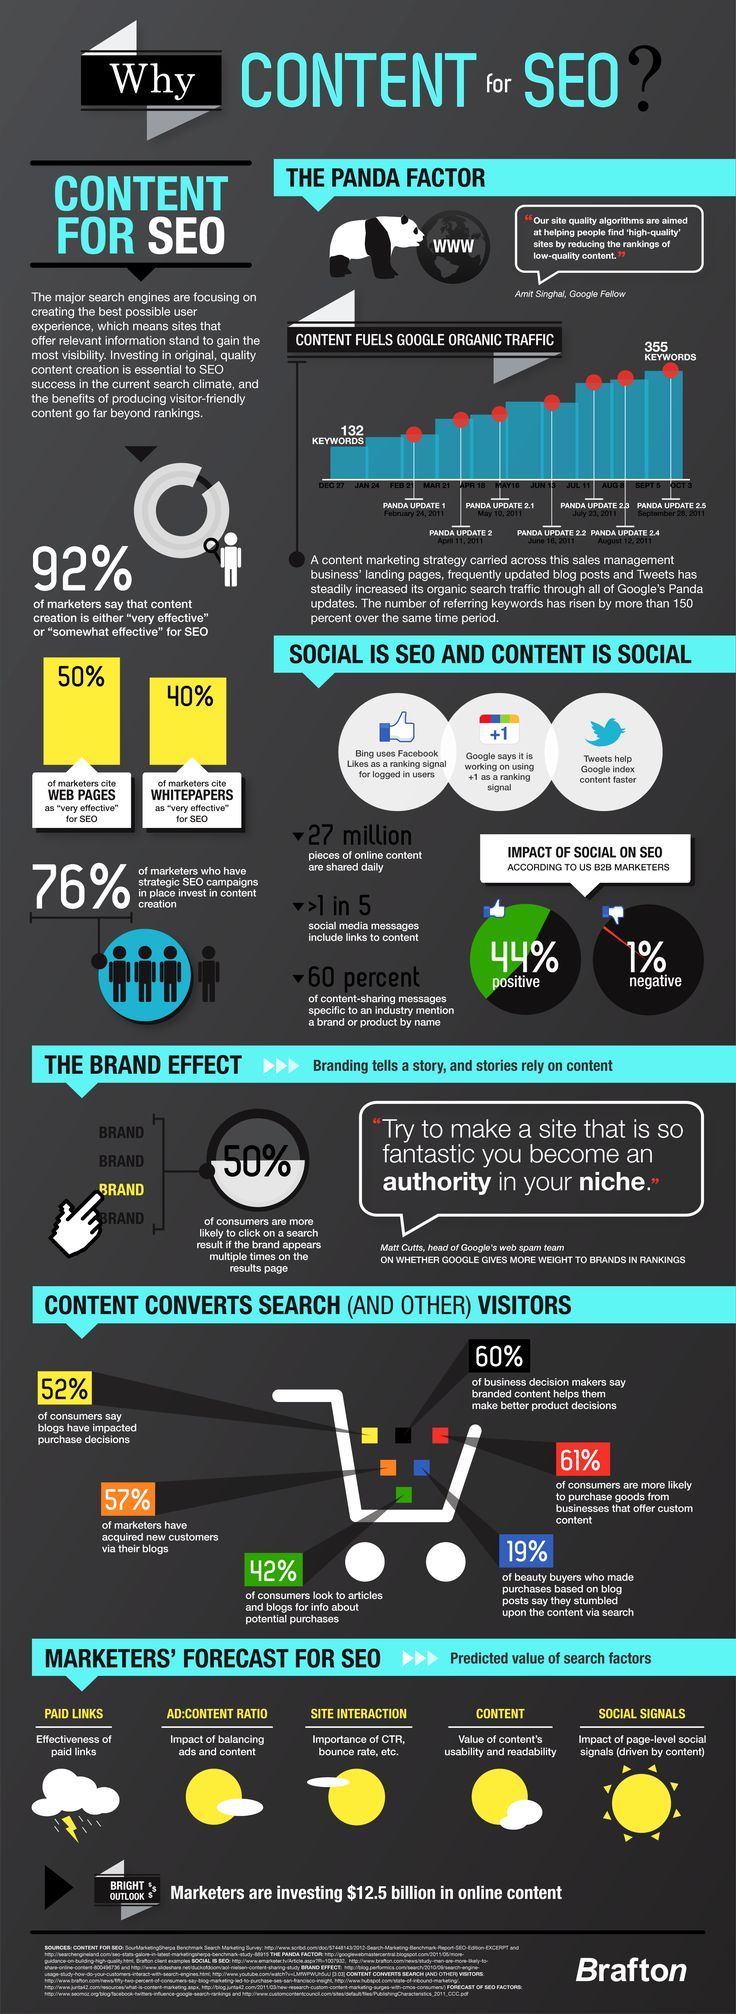 Why Content for SEO? In previous updates Google was fighting to curse bad contents. But, after the Panda Update, the world has seen turmoil in the SEO industry and good contents were being liked, rather than bad contents being cursed. Therefore, the whole SEO industry is now focusing more on building quality contents. The infographic shows some interesting facts about contents for SEO. - seoppcsmm.com